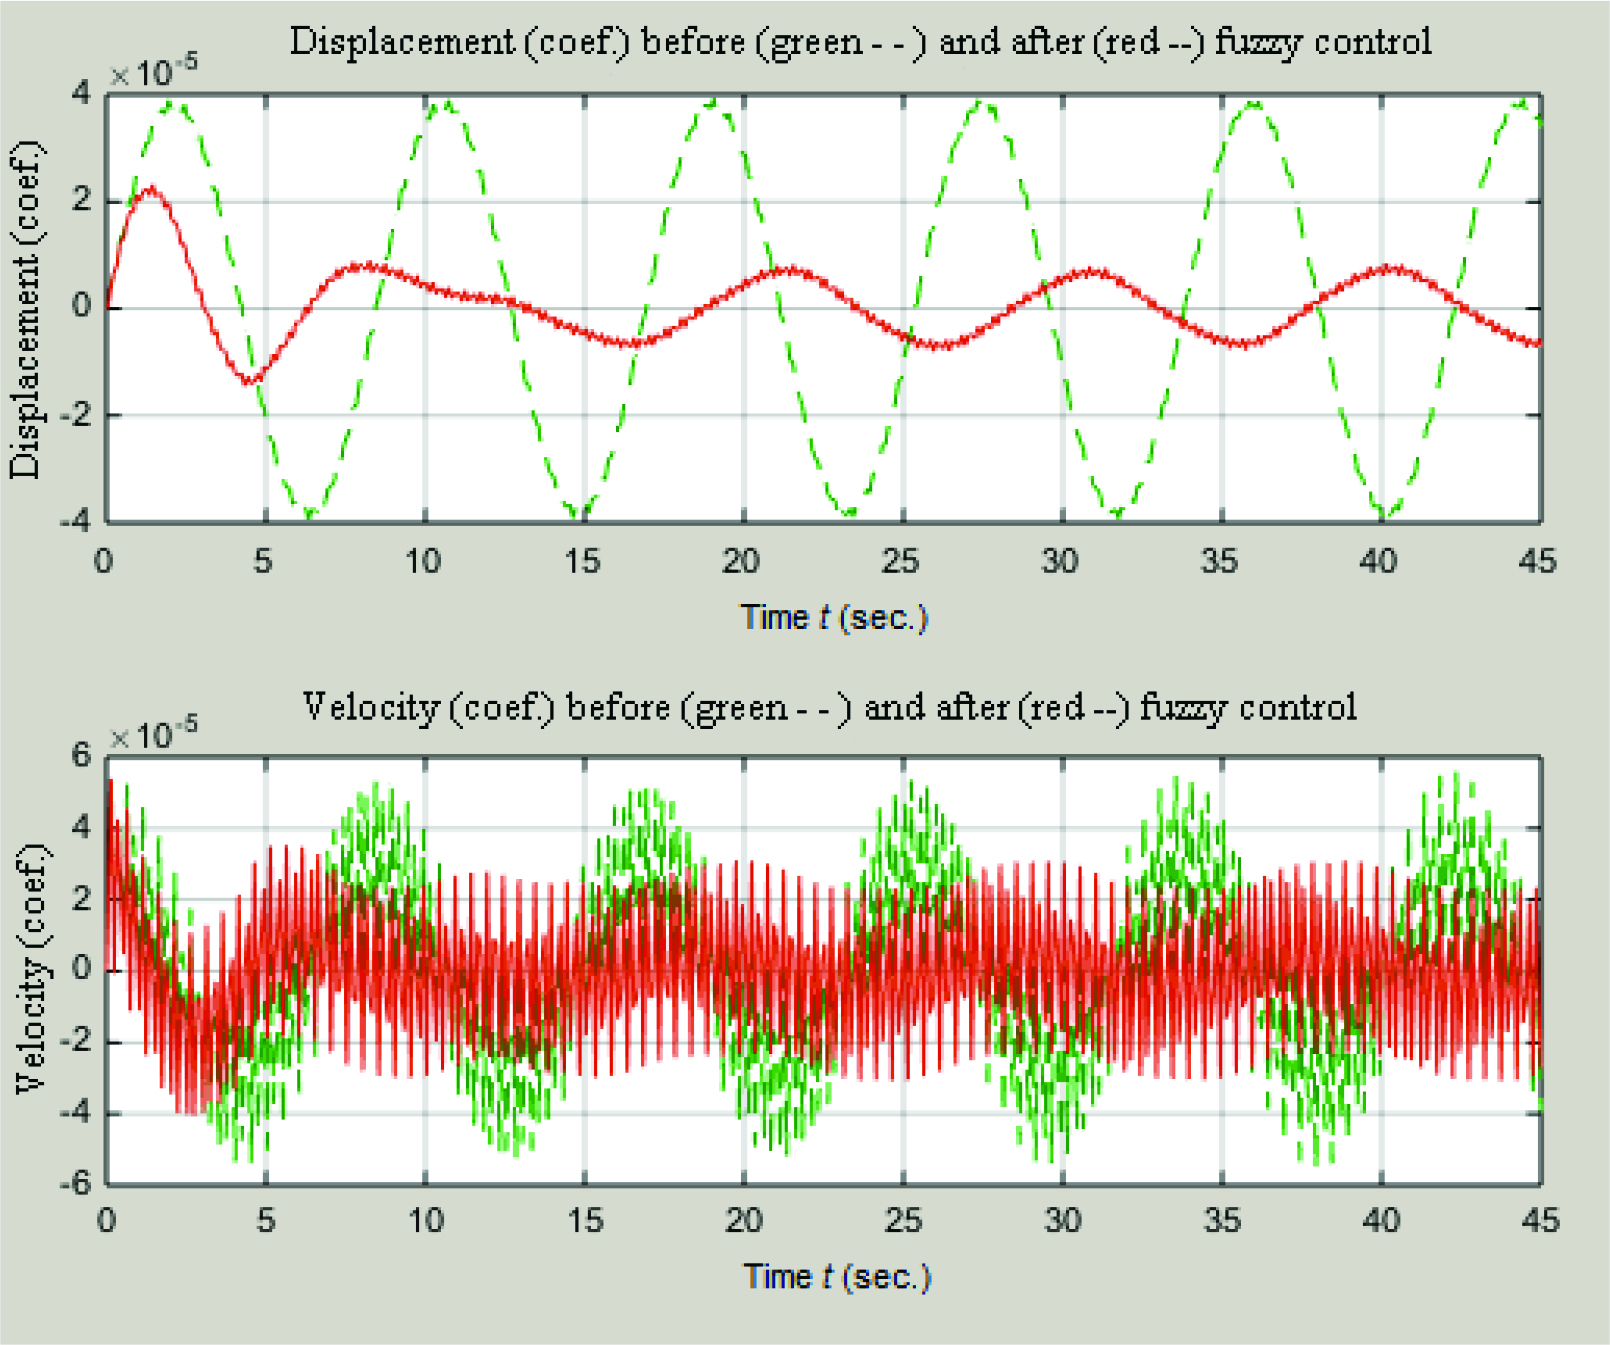 Fuzzy Vibration Suppression of a Smart Elastic Plate using